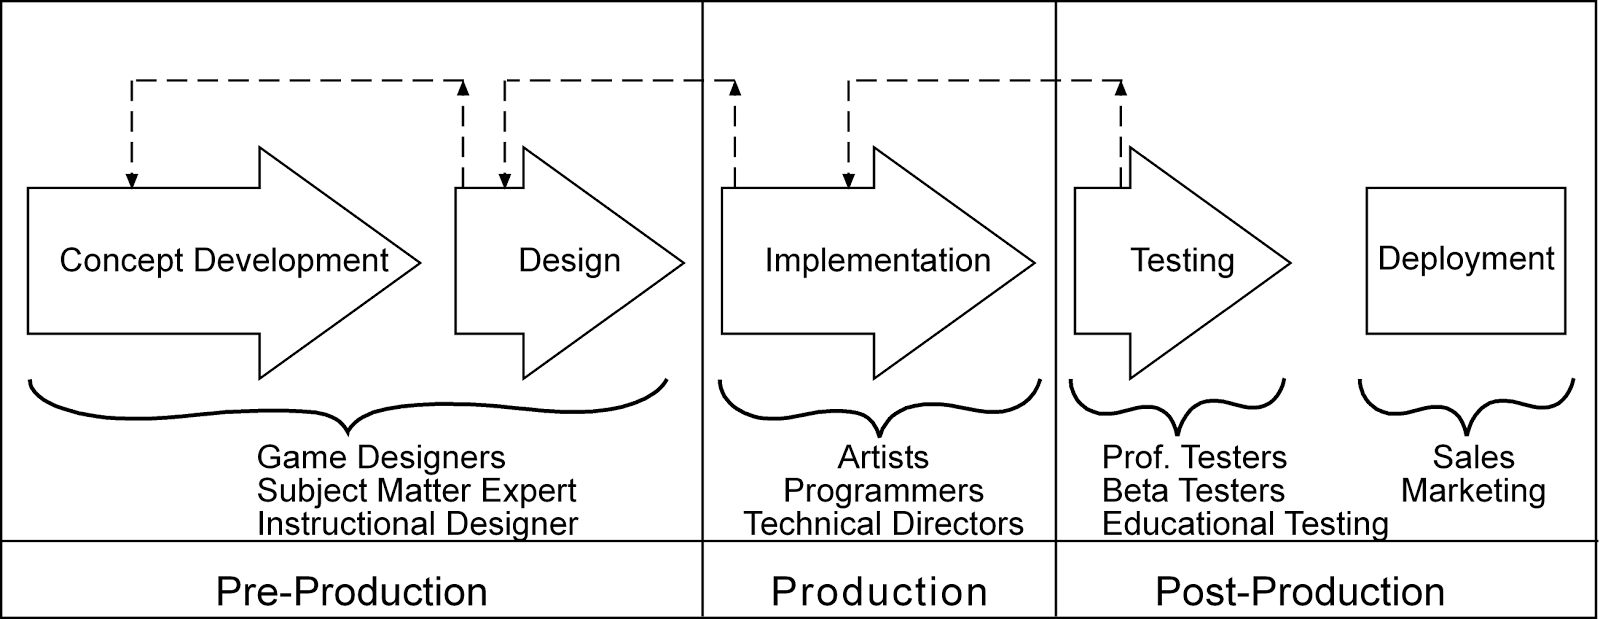 preproduction for game designing essay The fundamentals of game design koster republishes his fundamentals of game design essay, which is worth a read, if you've not had a look before.